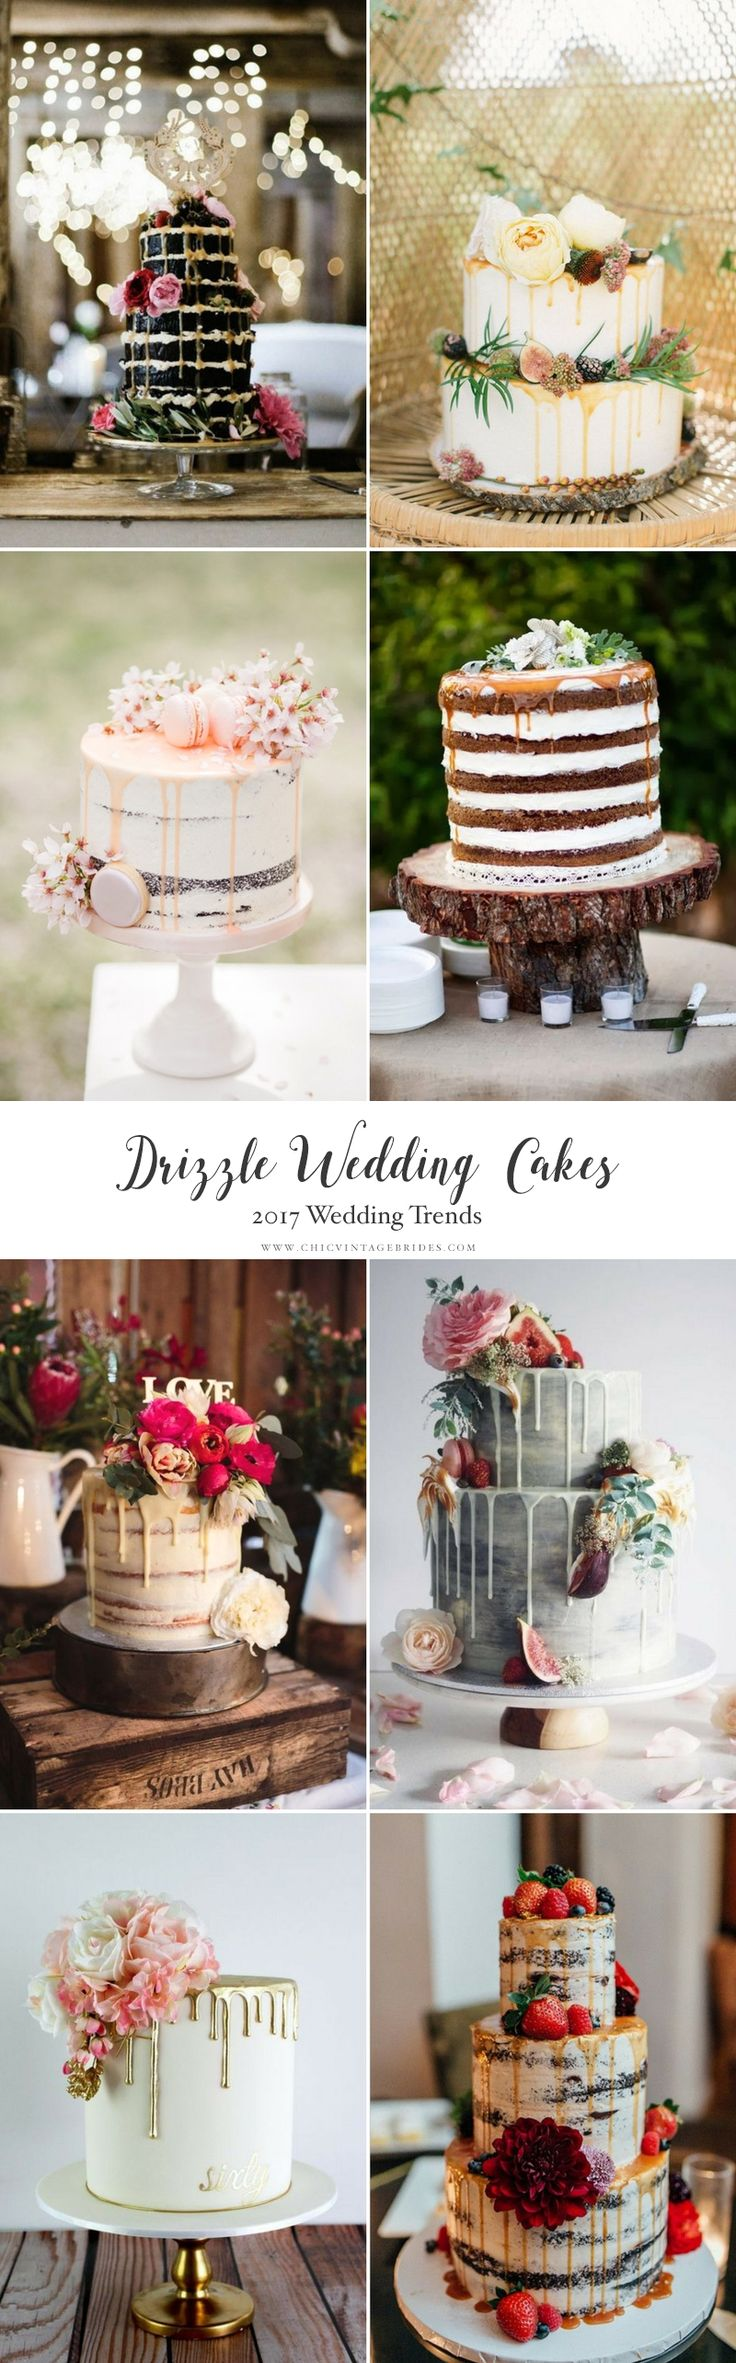 Top Wedding Trends 2017 - Drizzle Wedding Cakes